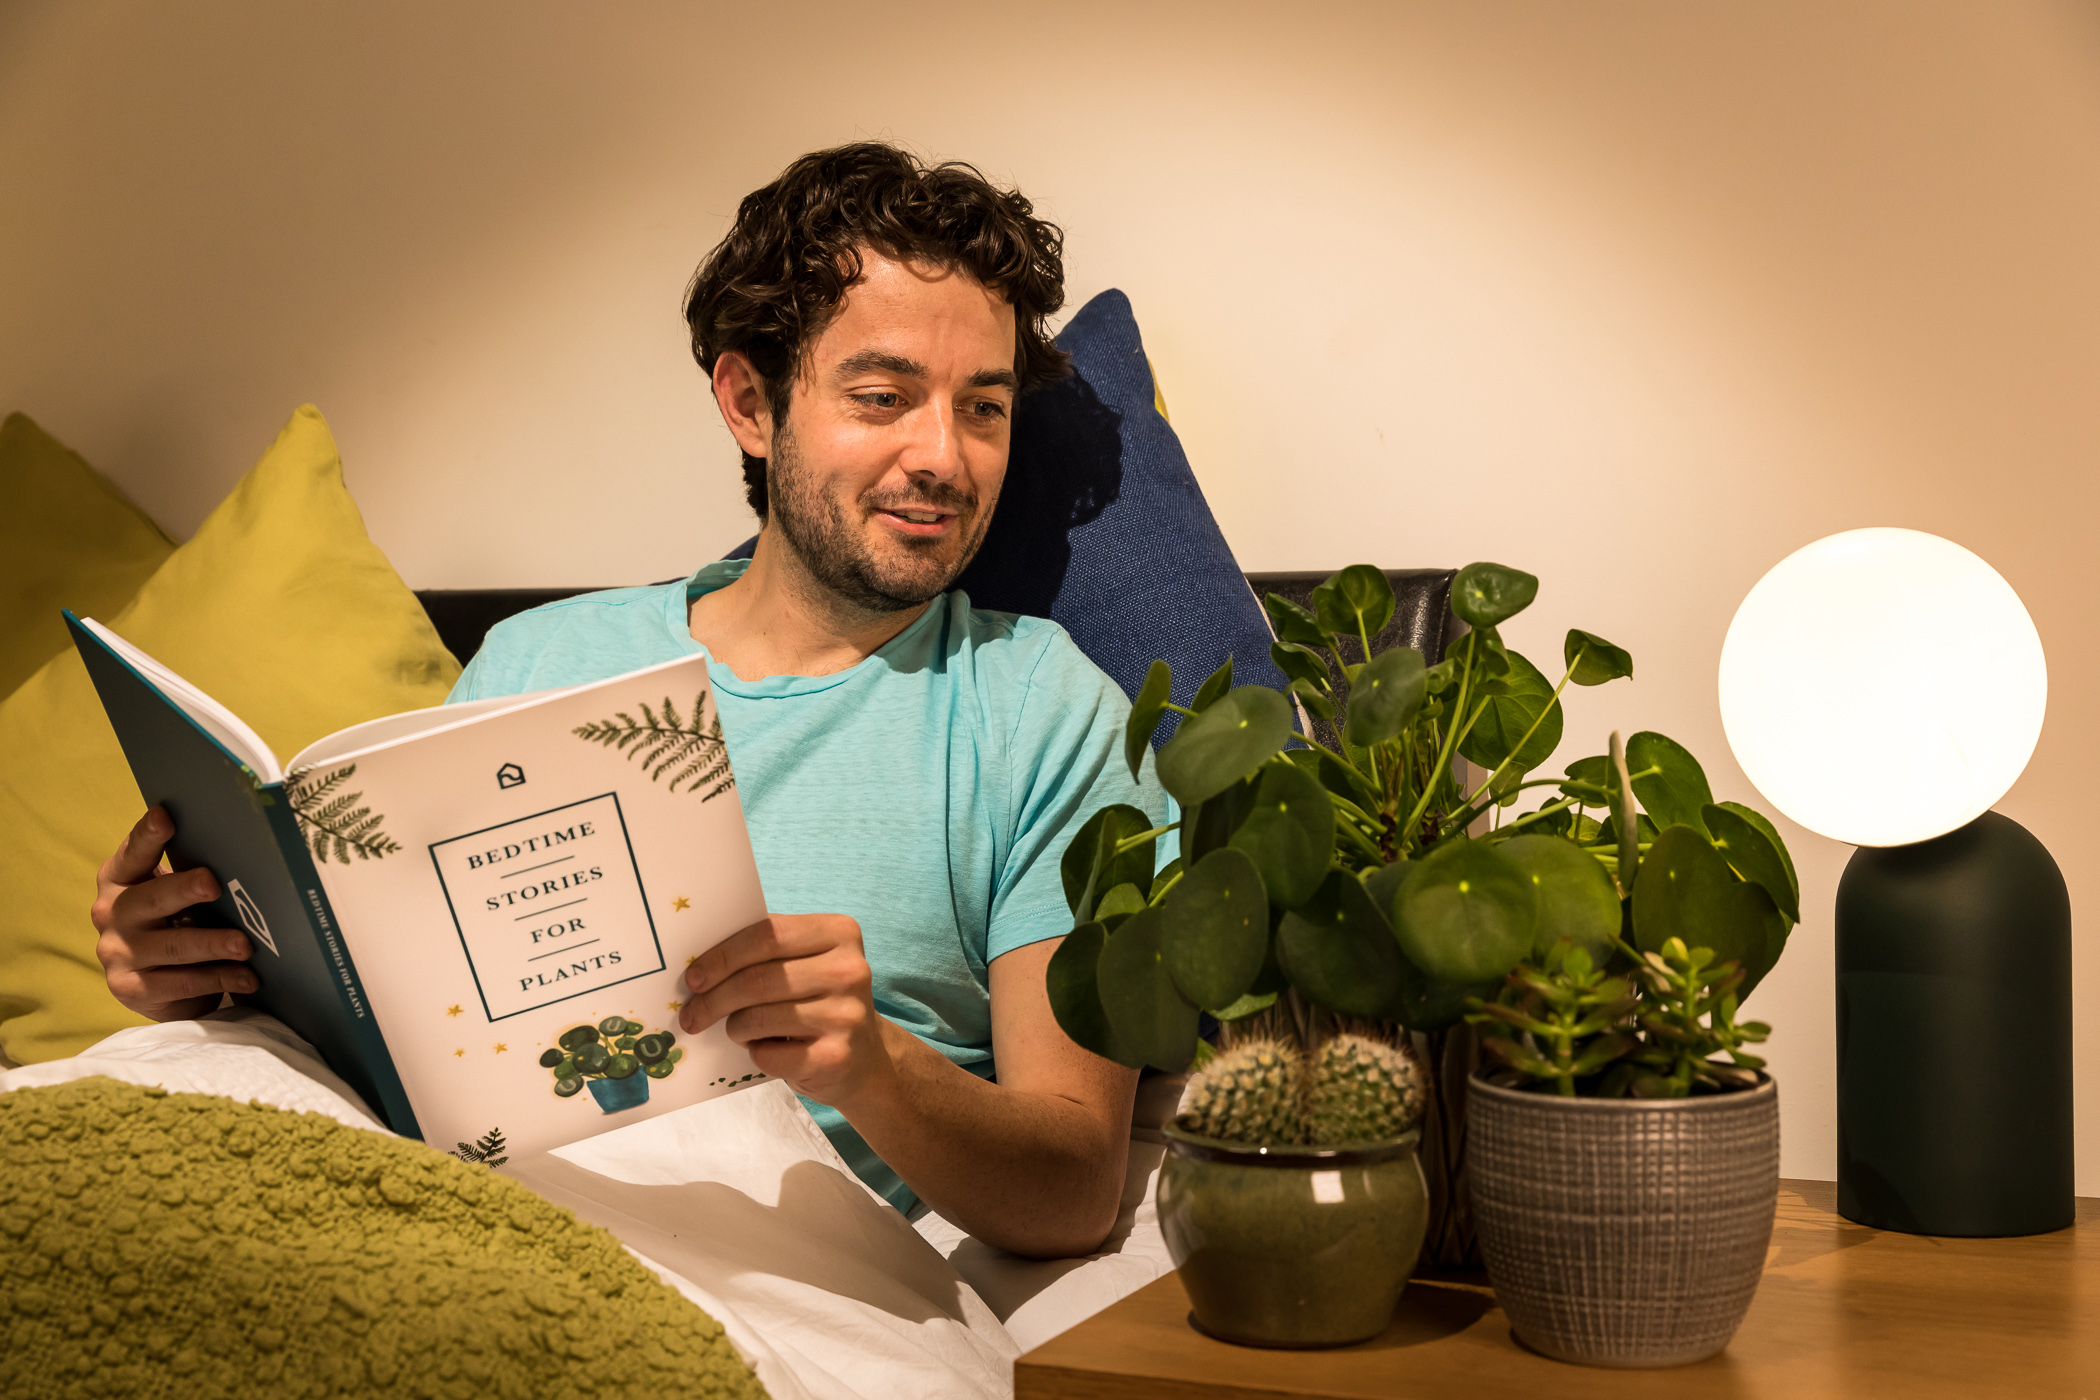 Will The Very Hungry Caterpillar Become a Horror Story?? Bedtime Stories – FOR PLANTS Released